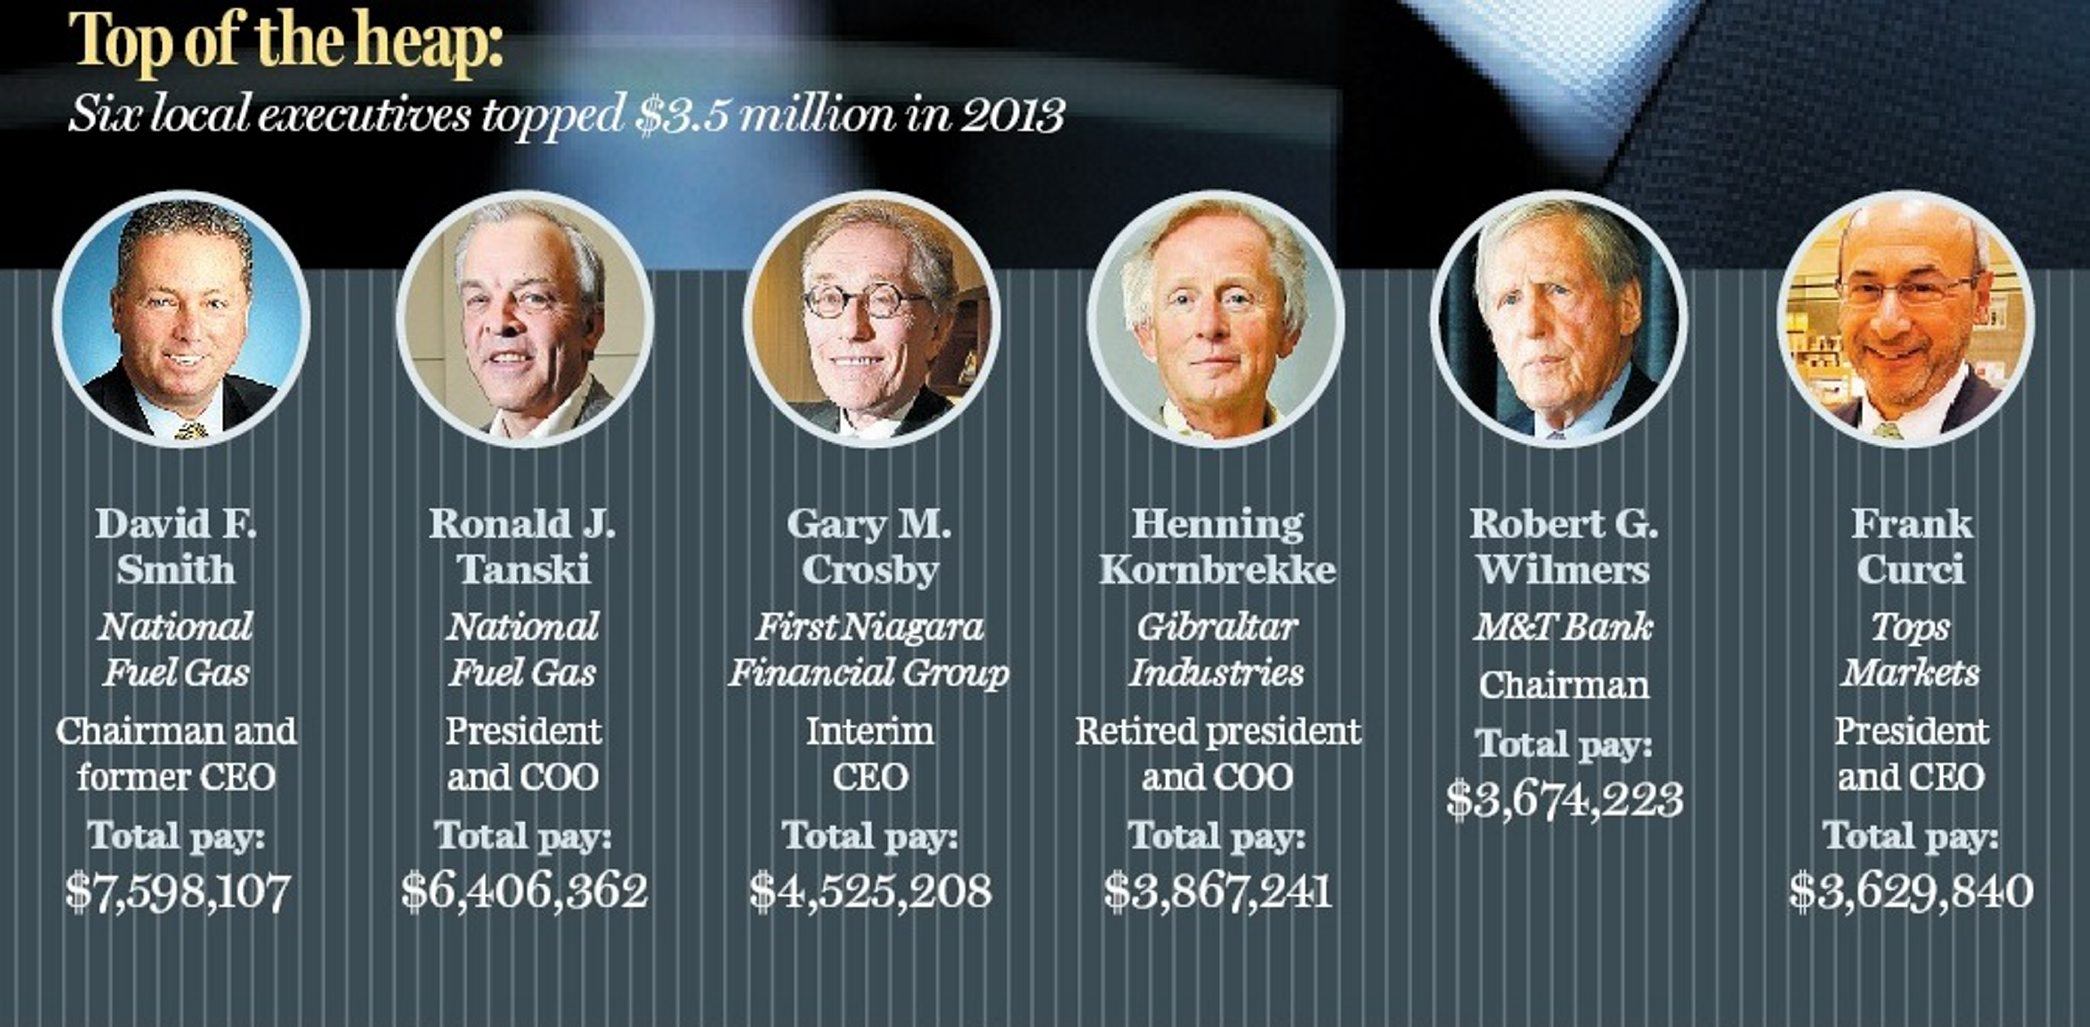 Six local executives topped $3.5 million in 2013.